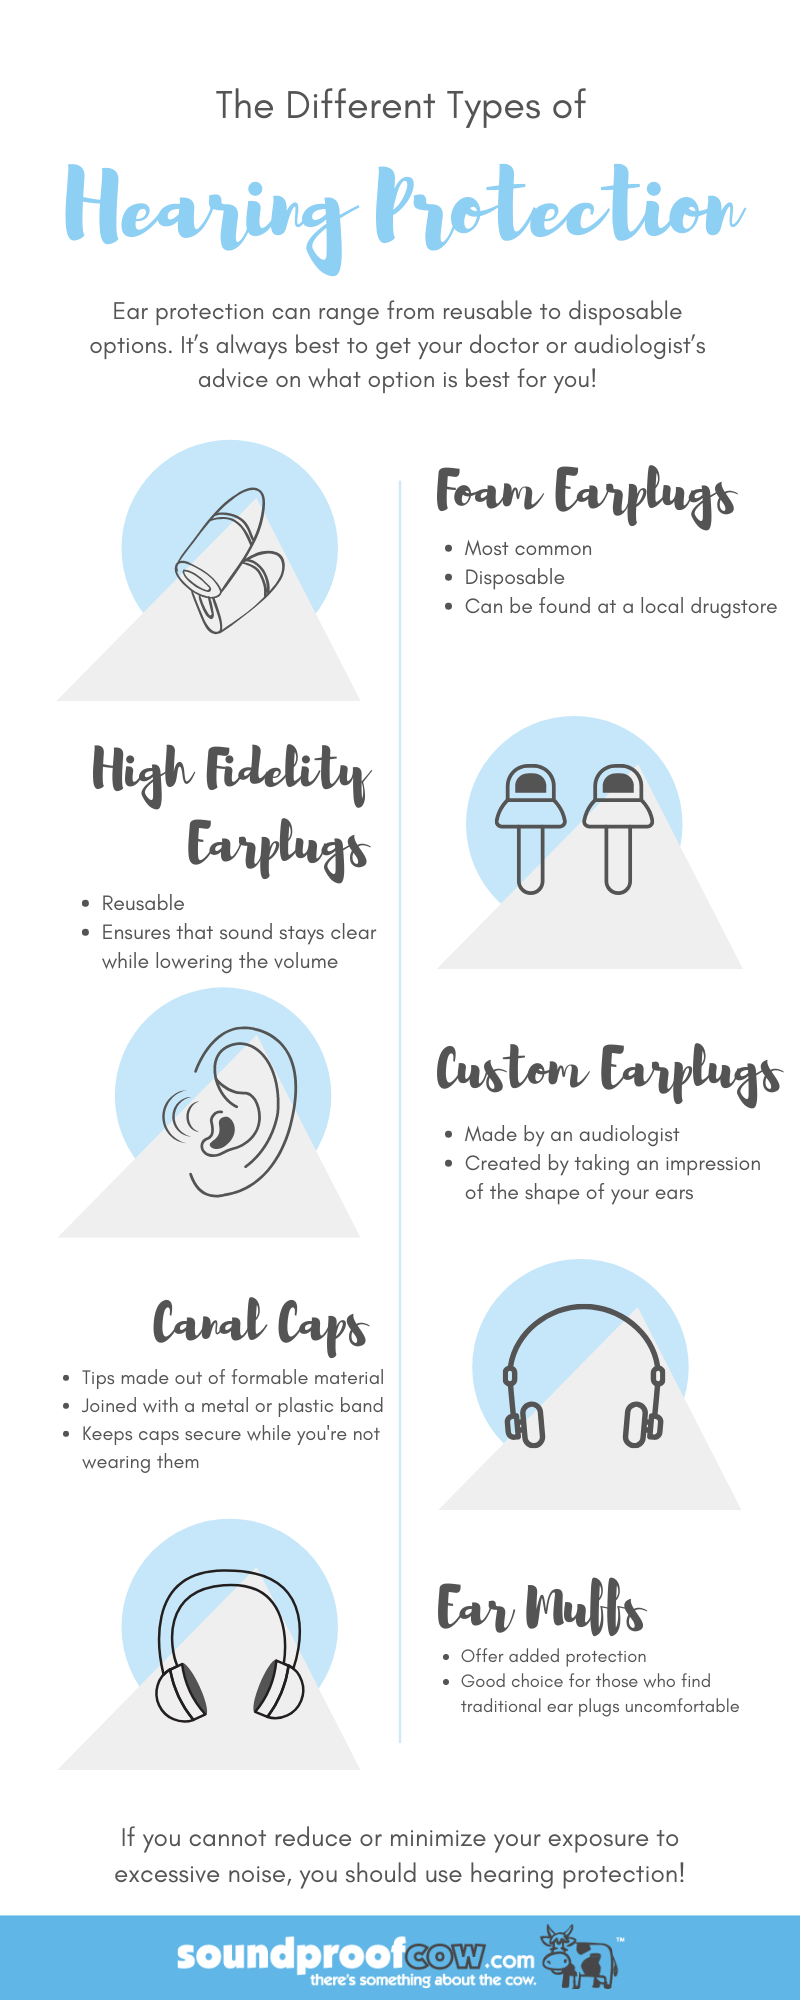 Different Types of Hearing Protection